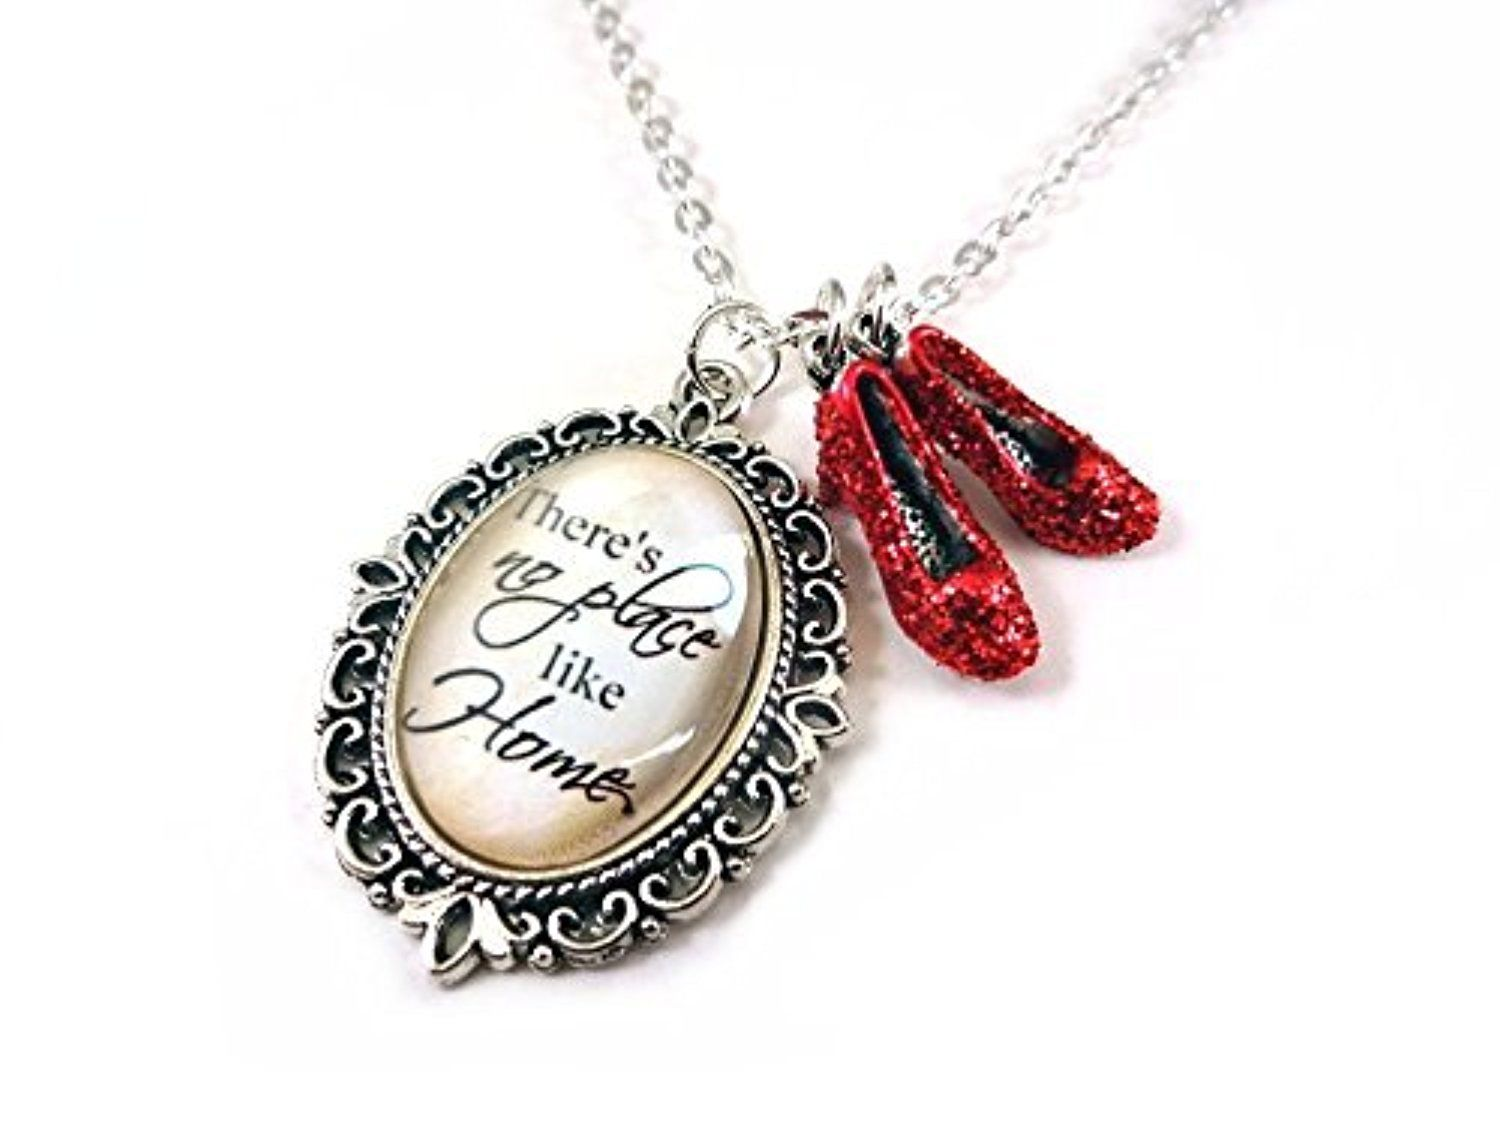 LunarraStar Wizard of Oz locket charm necklace - There's no place like Home Ruby red shoes & wand